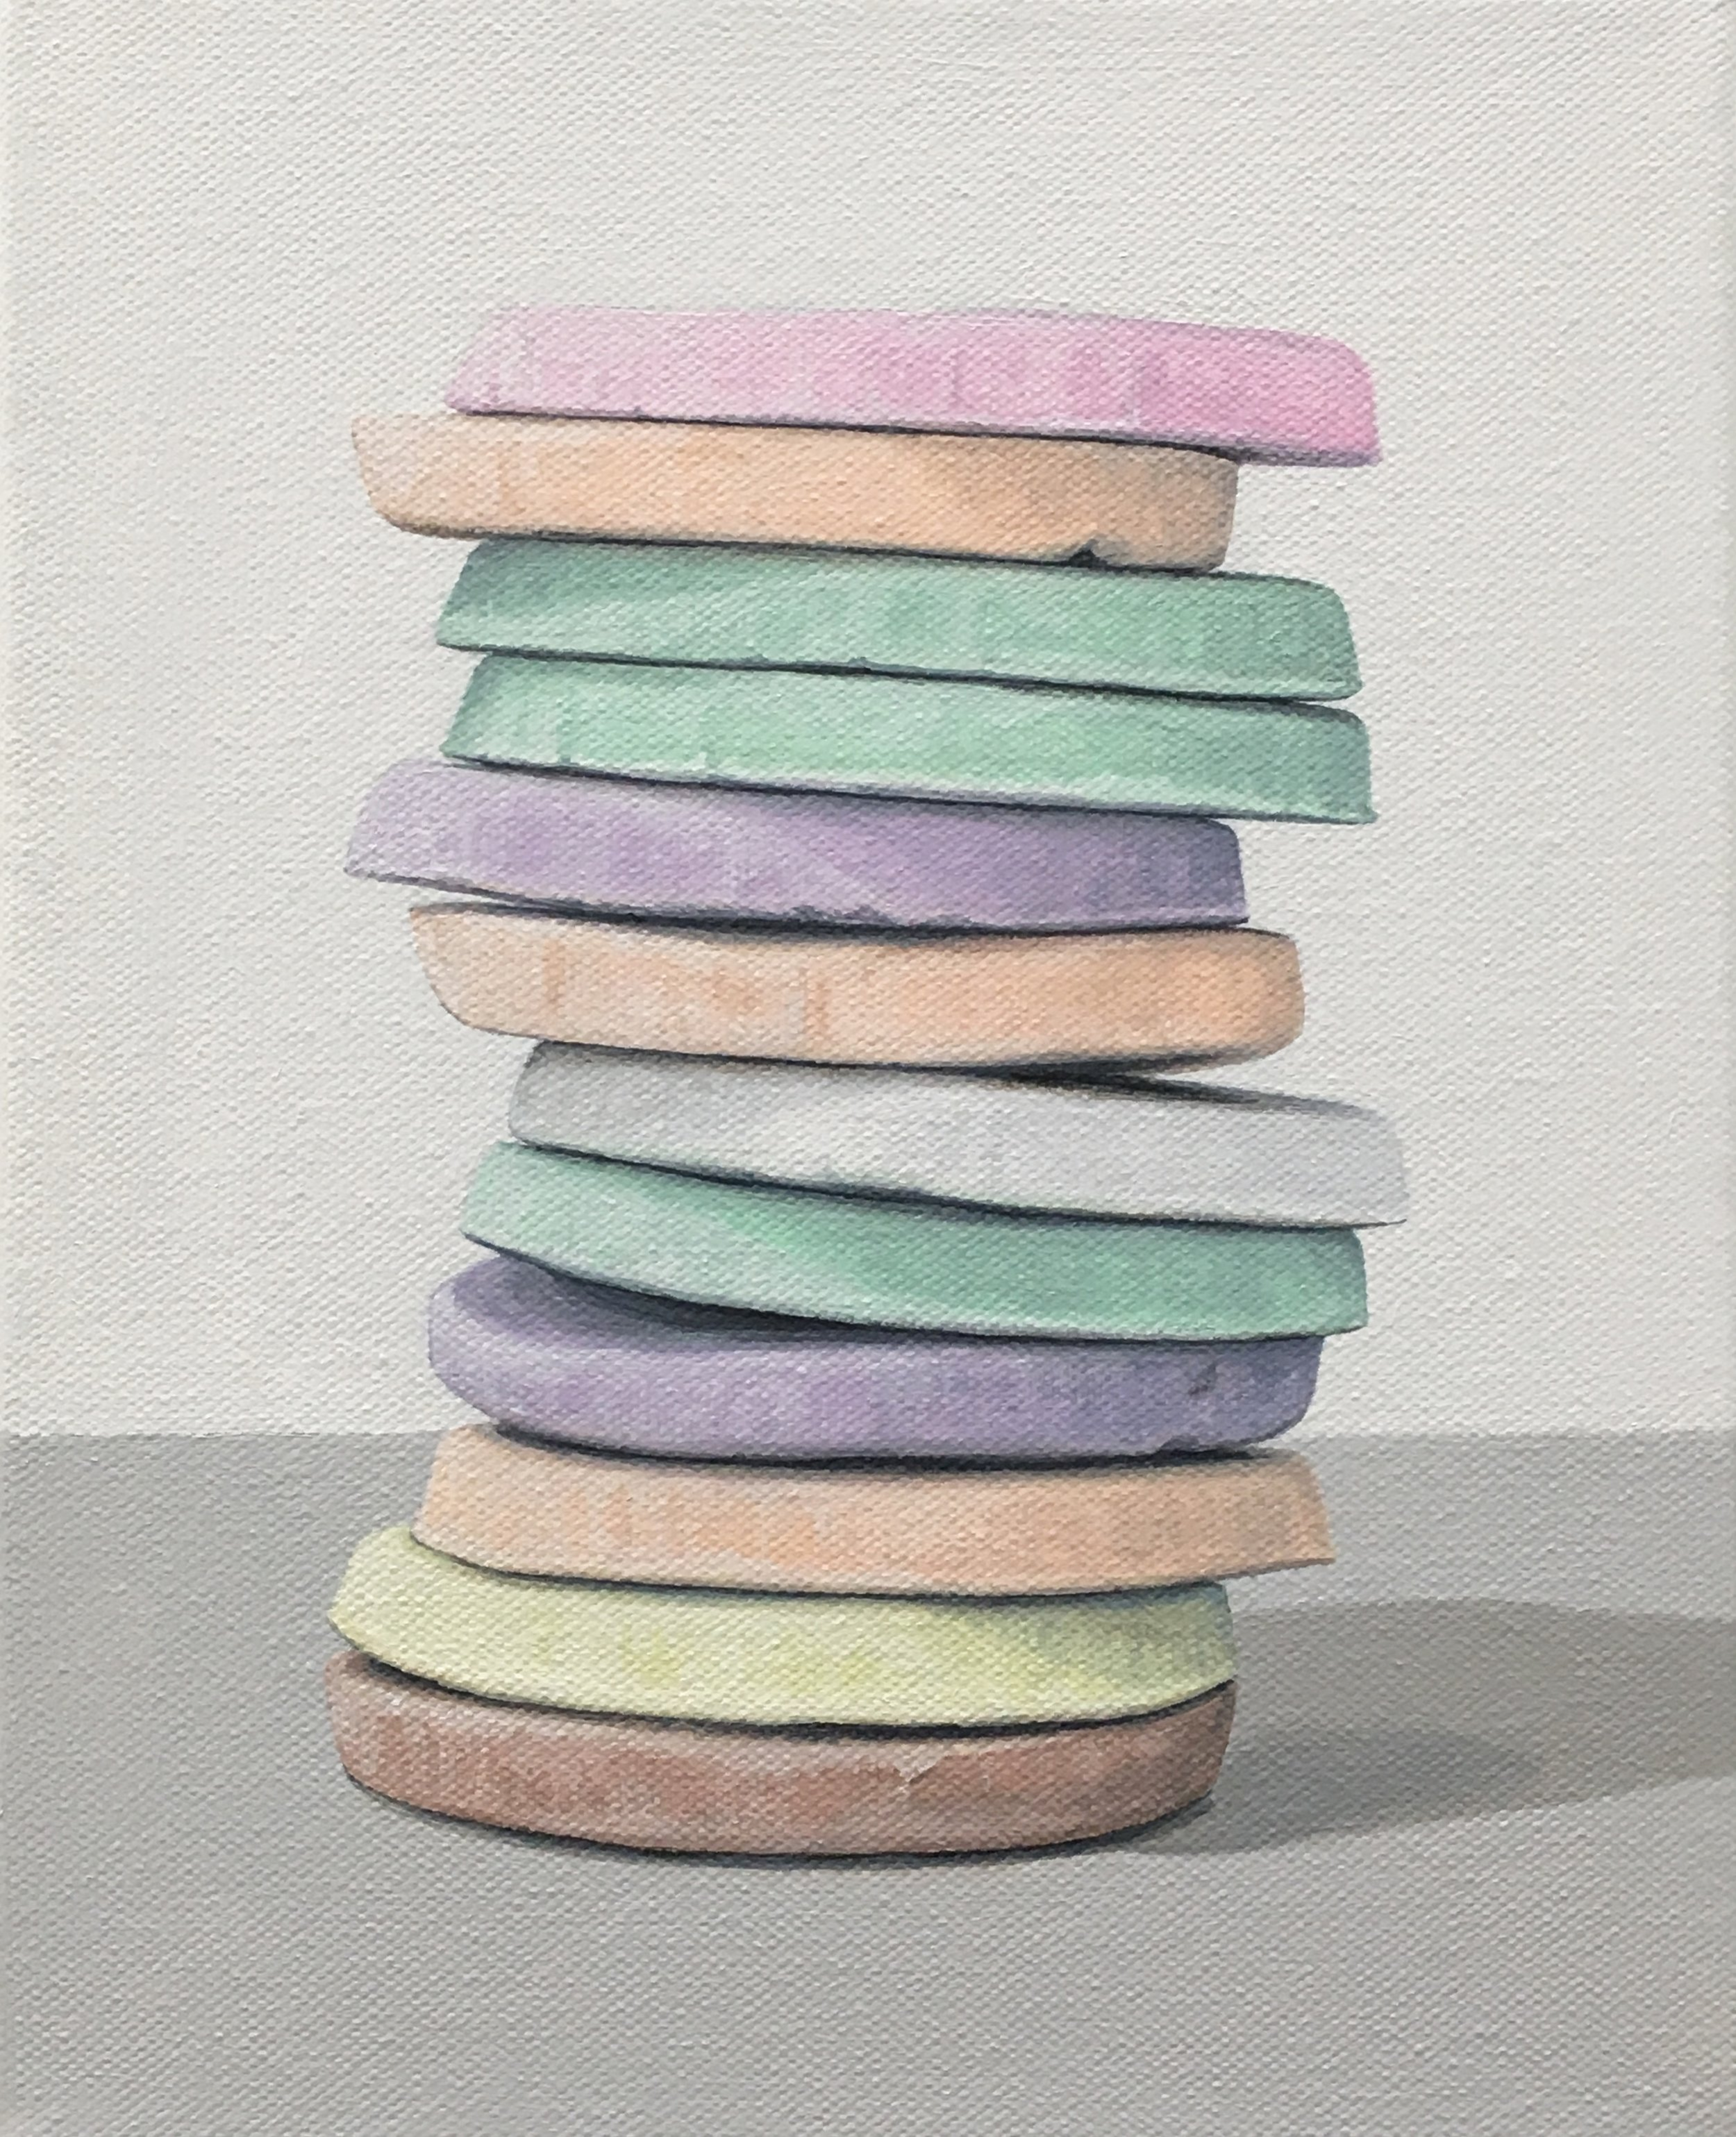 "Totem: Necco Wafer IV  This little candy stacks is built from 'An American Classic' candy, the Necco Wafer. As a culture we are generally attracted to these charming colors, but once the candy is experienced as a food there is often a mismatch between its attractiveness and its taste. This work explores the occurrence of the incongruity of appearance and experience.  8"" x 10"" gallery wrapped canvas  $250.00     SOLD"